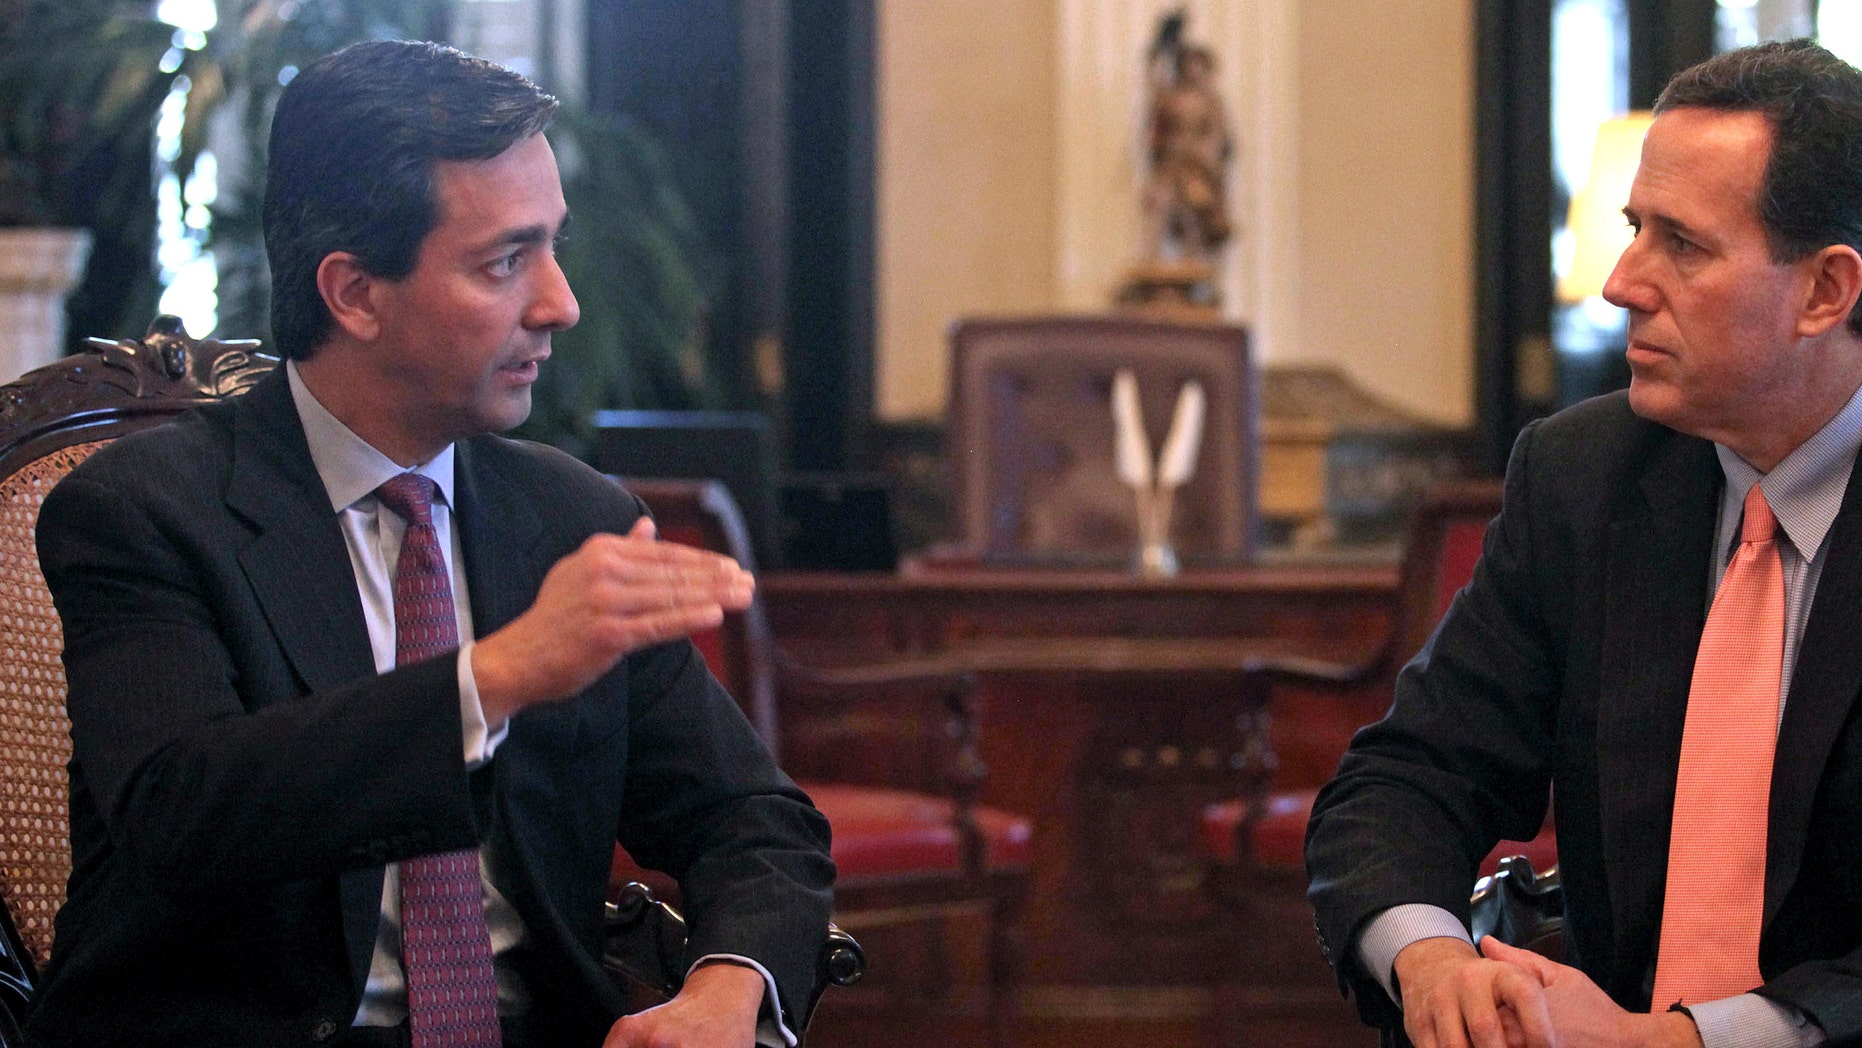 Commonwealth of Puerto Rico Governor Luis Fortuno, left, talks to Republican presidential candidate, former Pennsylvania Sen. Rick Santorum during their meeting at the governor's mansion La Fortaleza, or Fortess, in San Juan, Puerto Rico, Wednesday March 14, 2012. (AP Photo/Dennis M. Rivera Pichardo)